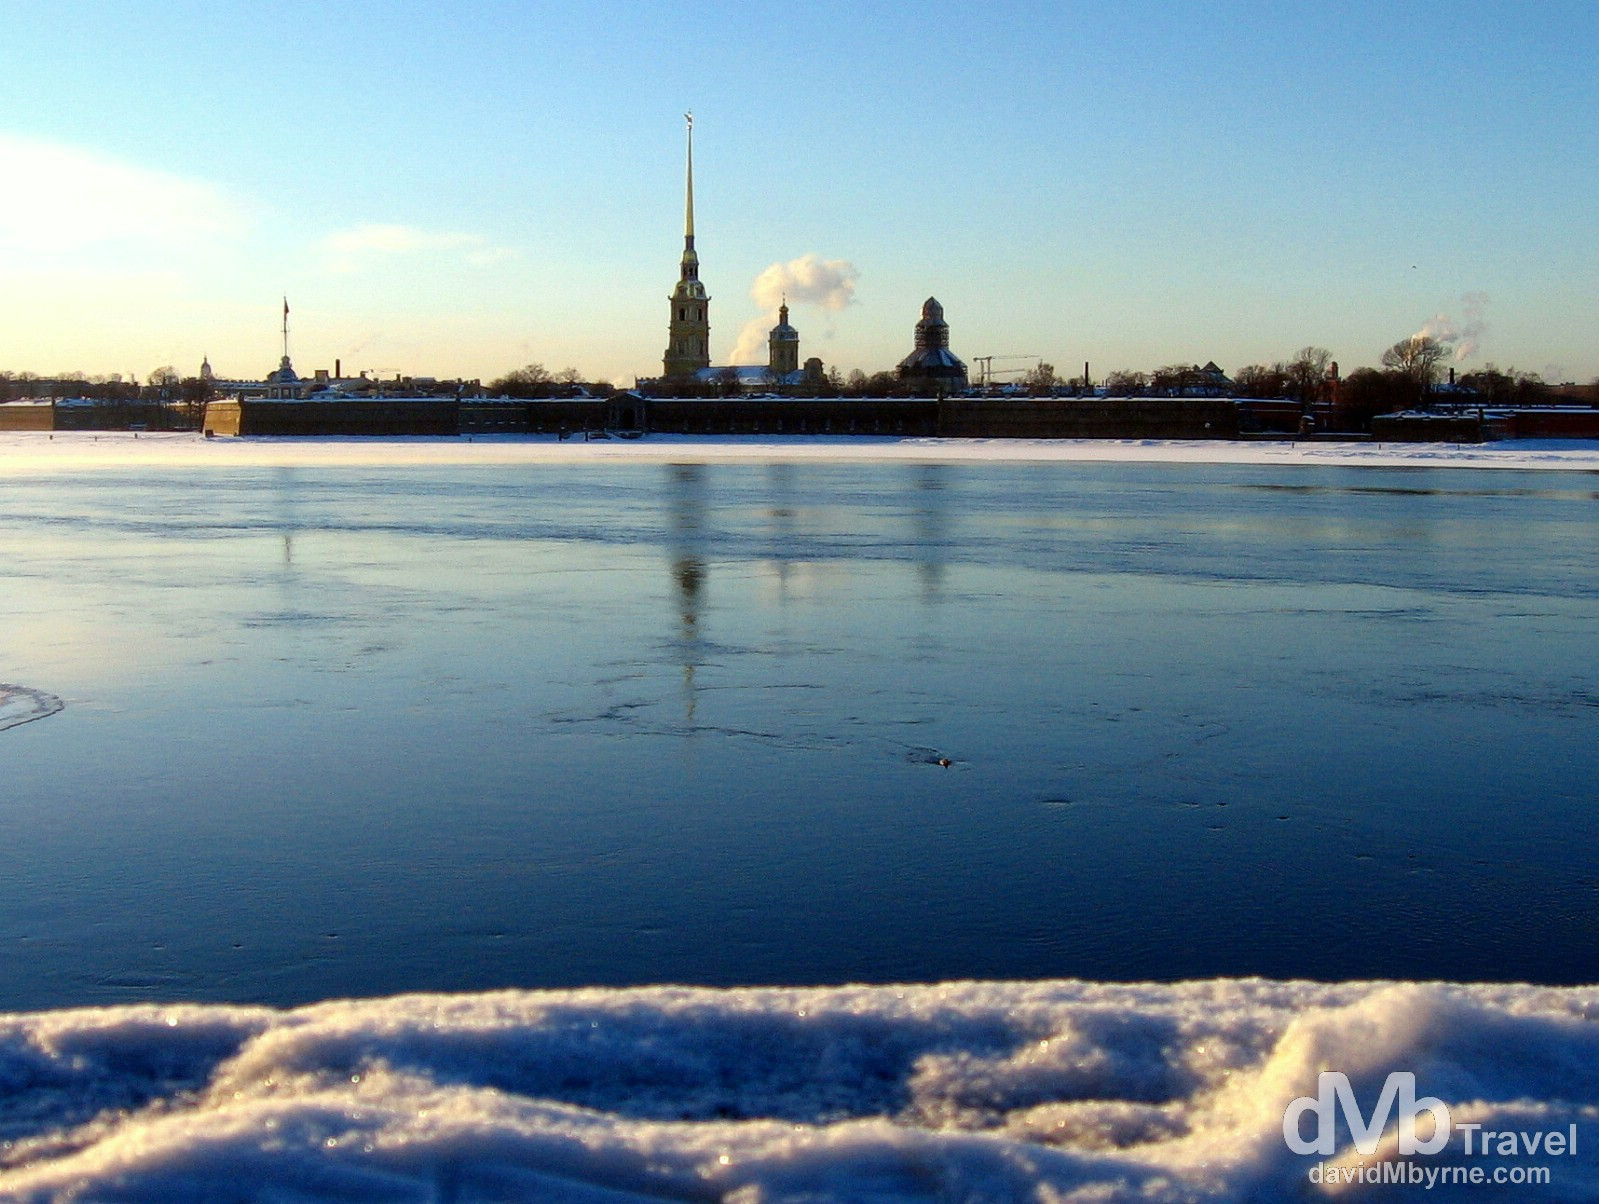 Peter & Paul Fortress on Zayachy Island as seen from the Troitsky most (bridge) over the Neva River in St Petersburg, Russia. February 27, 2006.